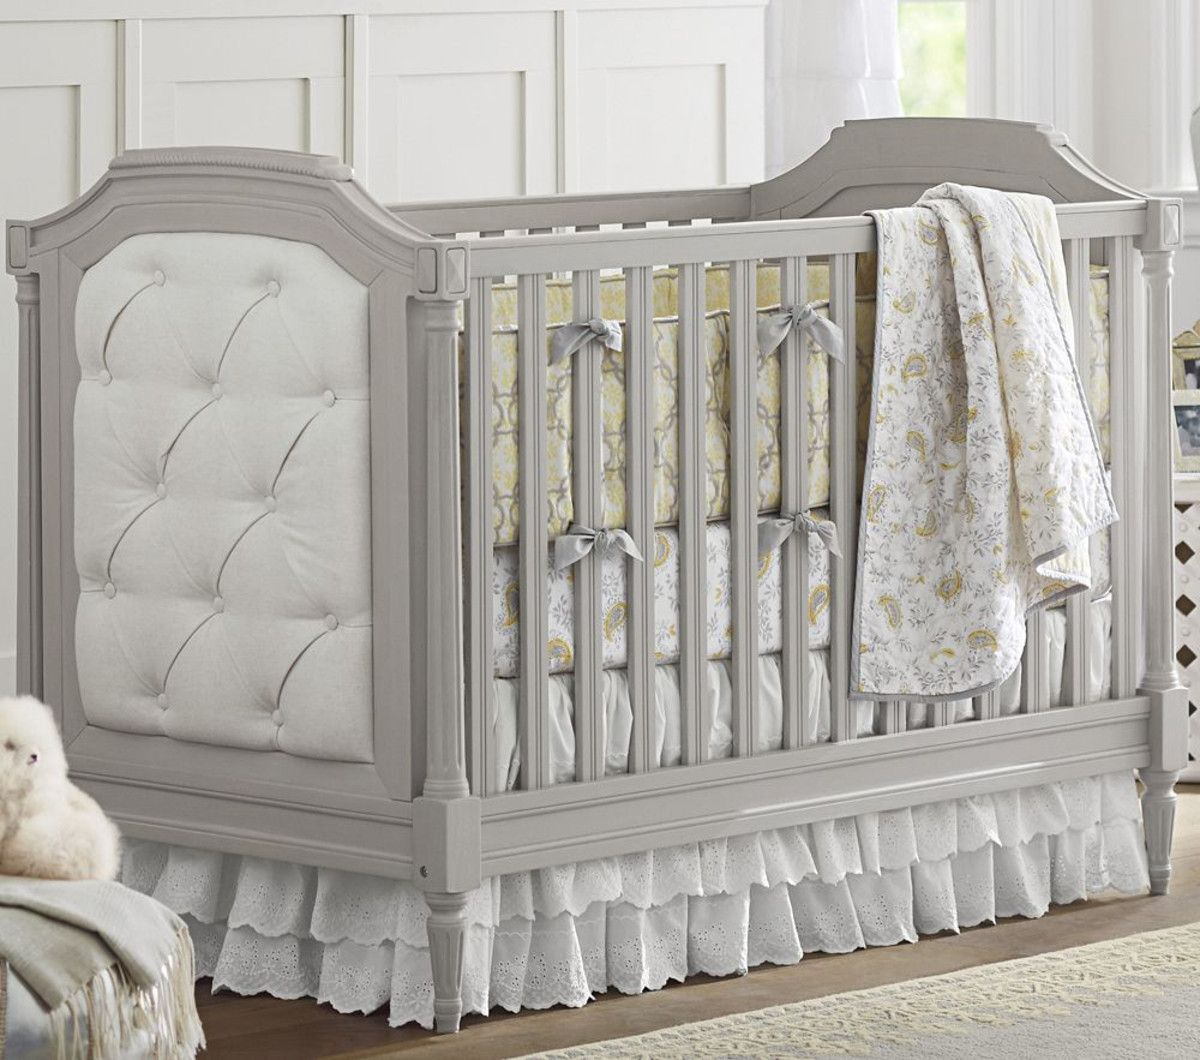 The Blythe Crib From Pottery Barn Kids Nursery Ideas Pottery